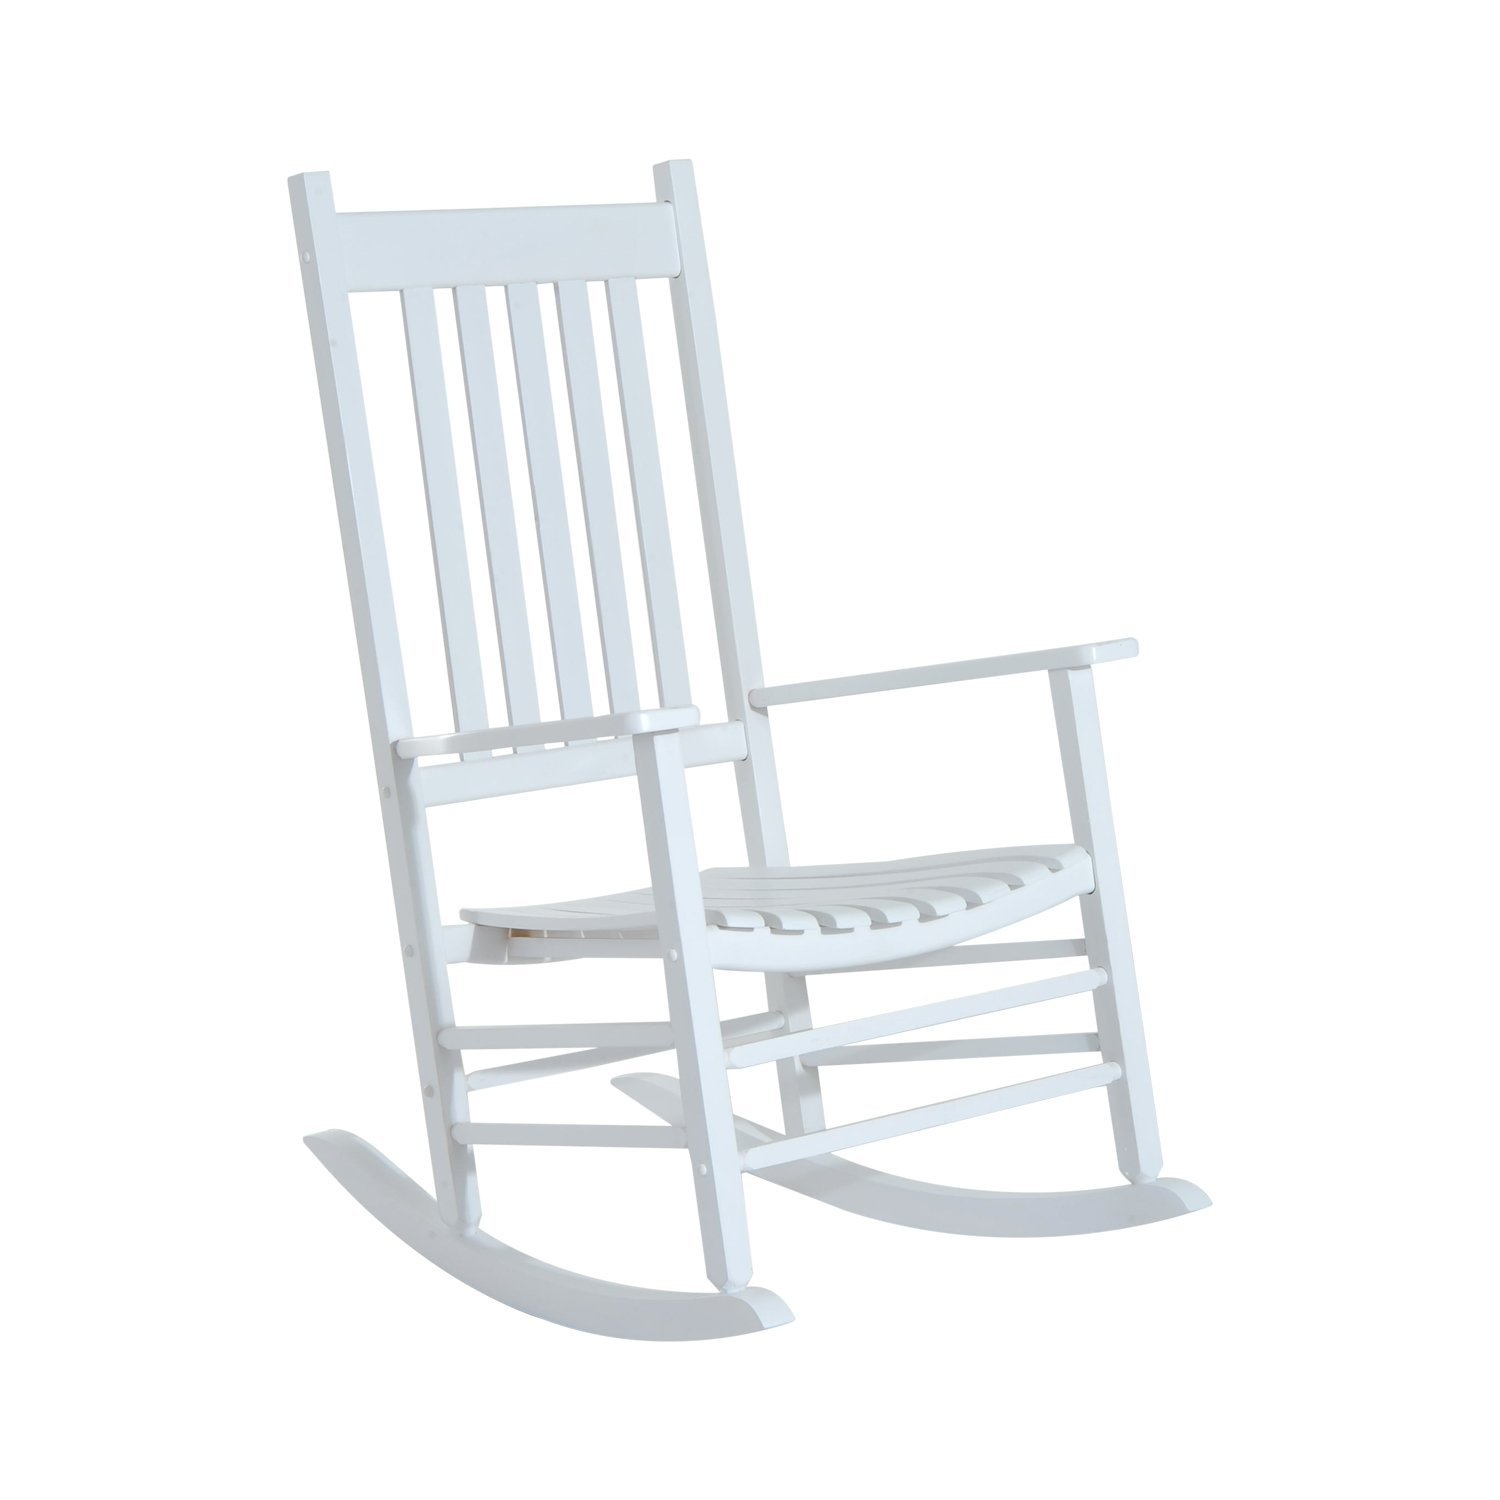 Outsunny Versatile Wooden Indoor Outdoor High Back Slat Rocking Chair White